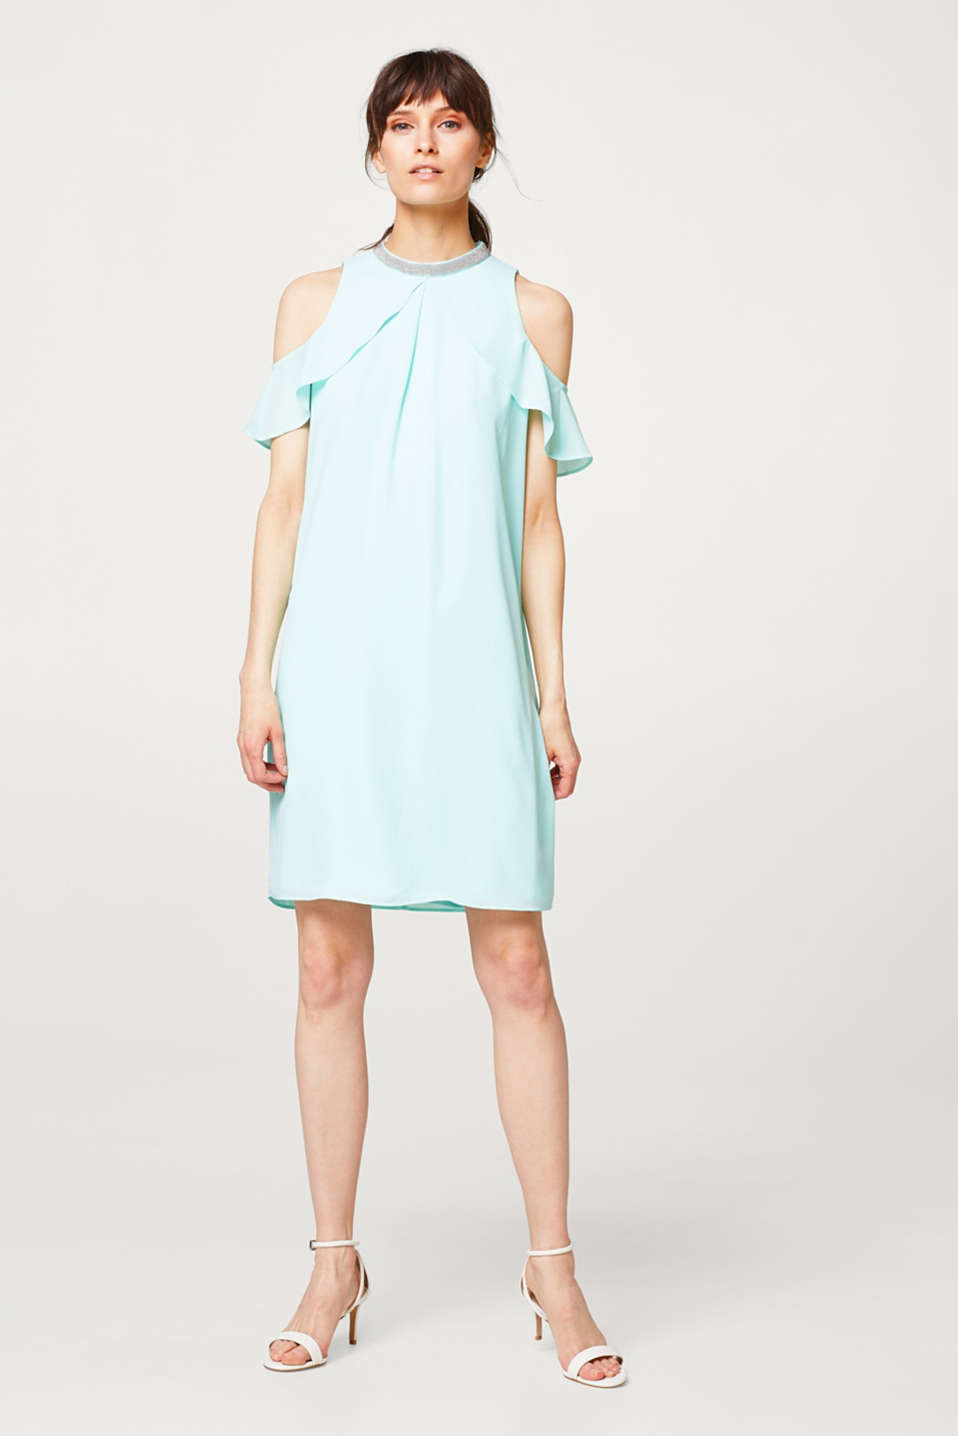 Cold shoulder dress with an embellished band collar